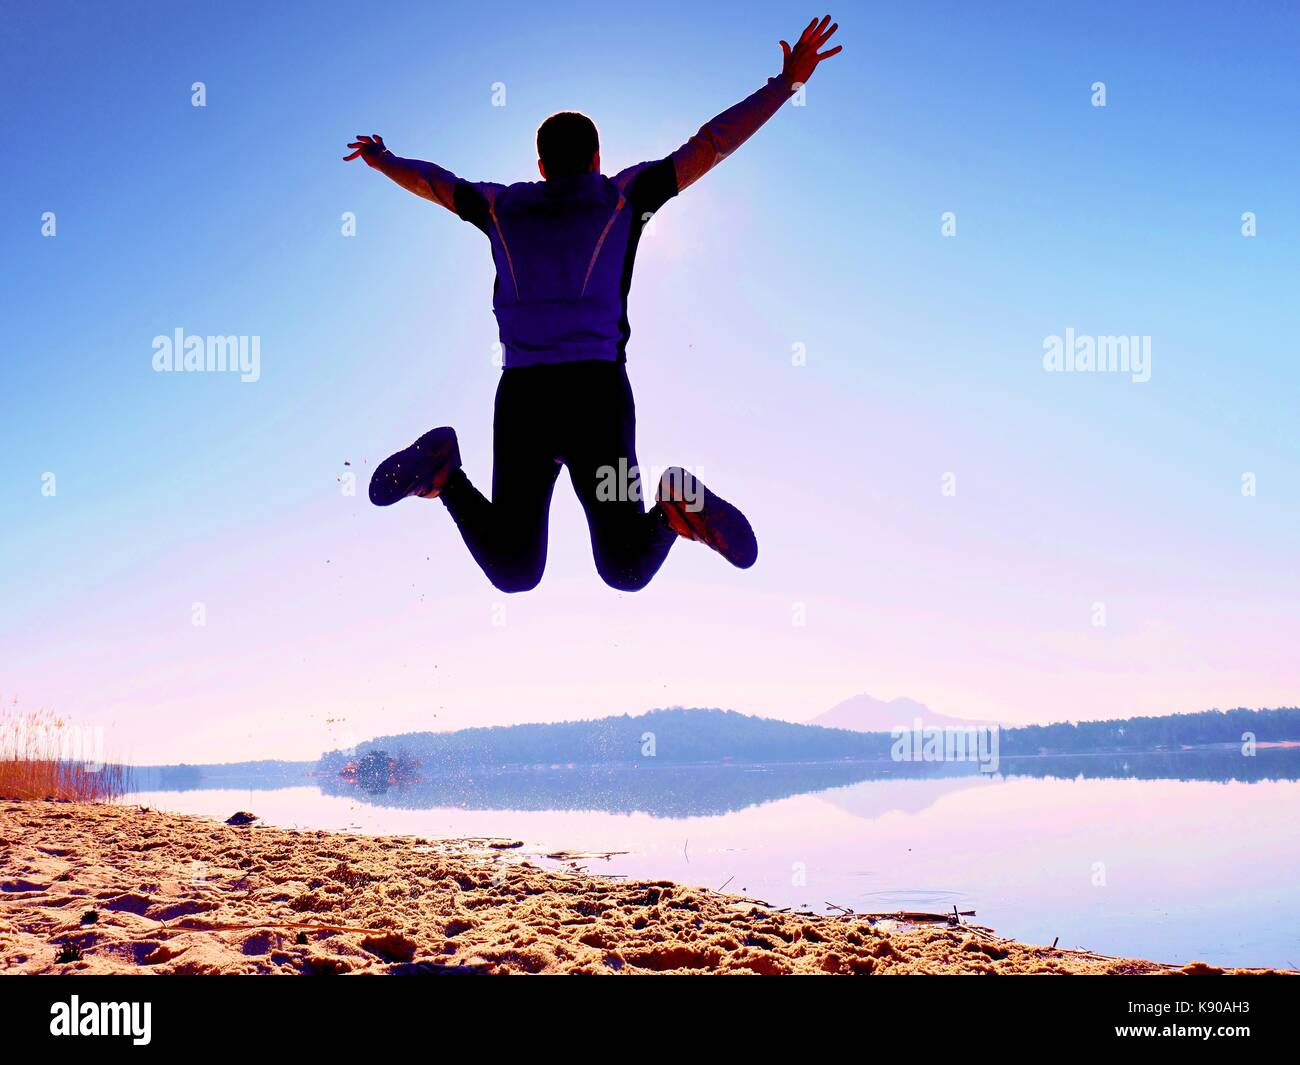 Man crazy jumping on beach.  Sportsman flying on beach during the amazing sunrise above horizon - Stock Image